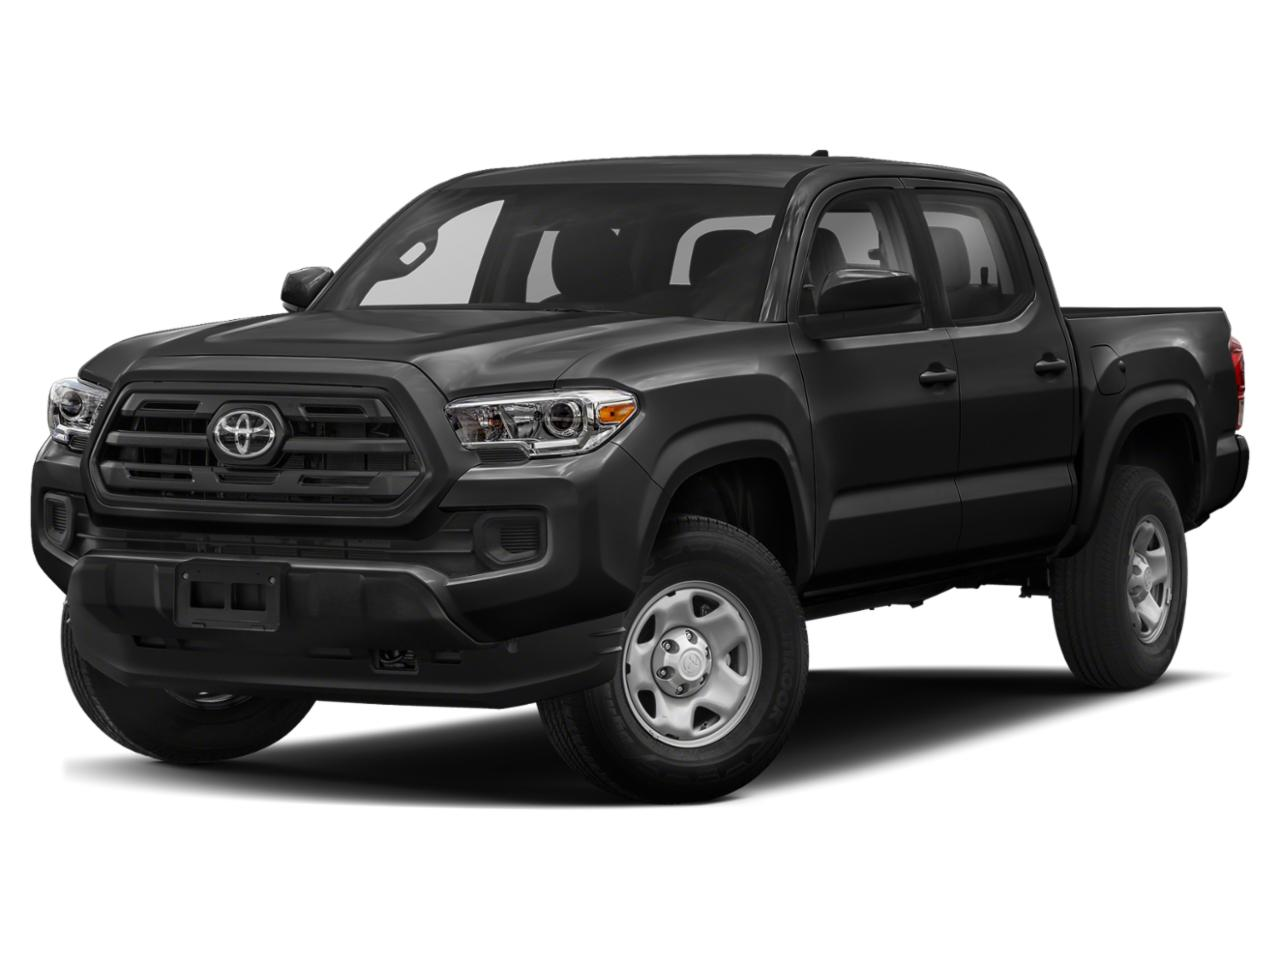 2019 Toyota Tacoma 2WD Vehicle Photo in Brownsville, TX 78520